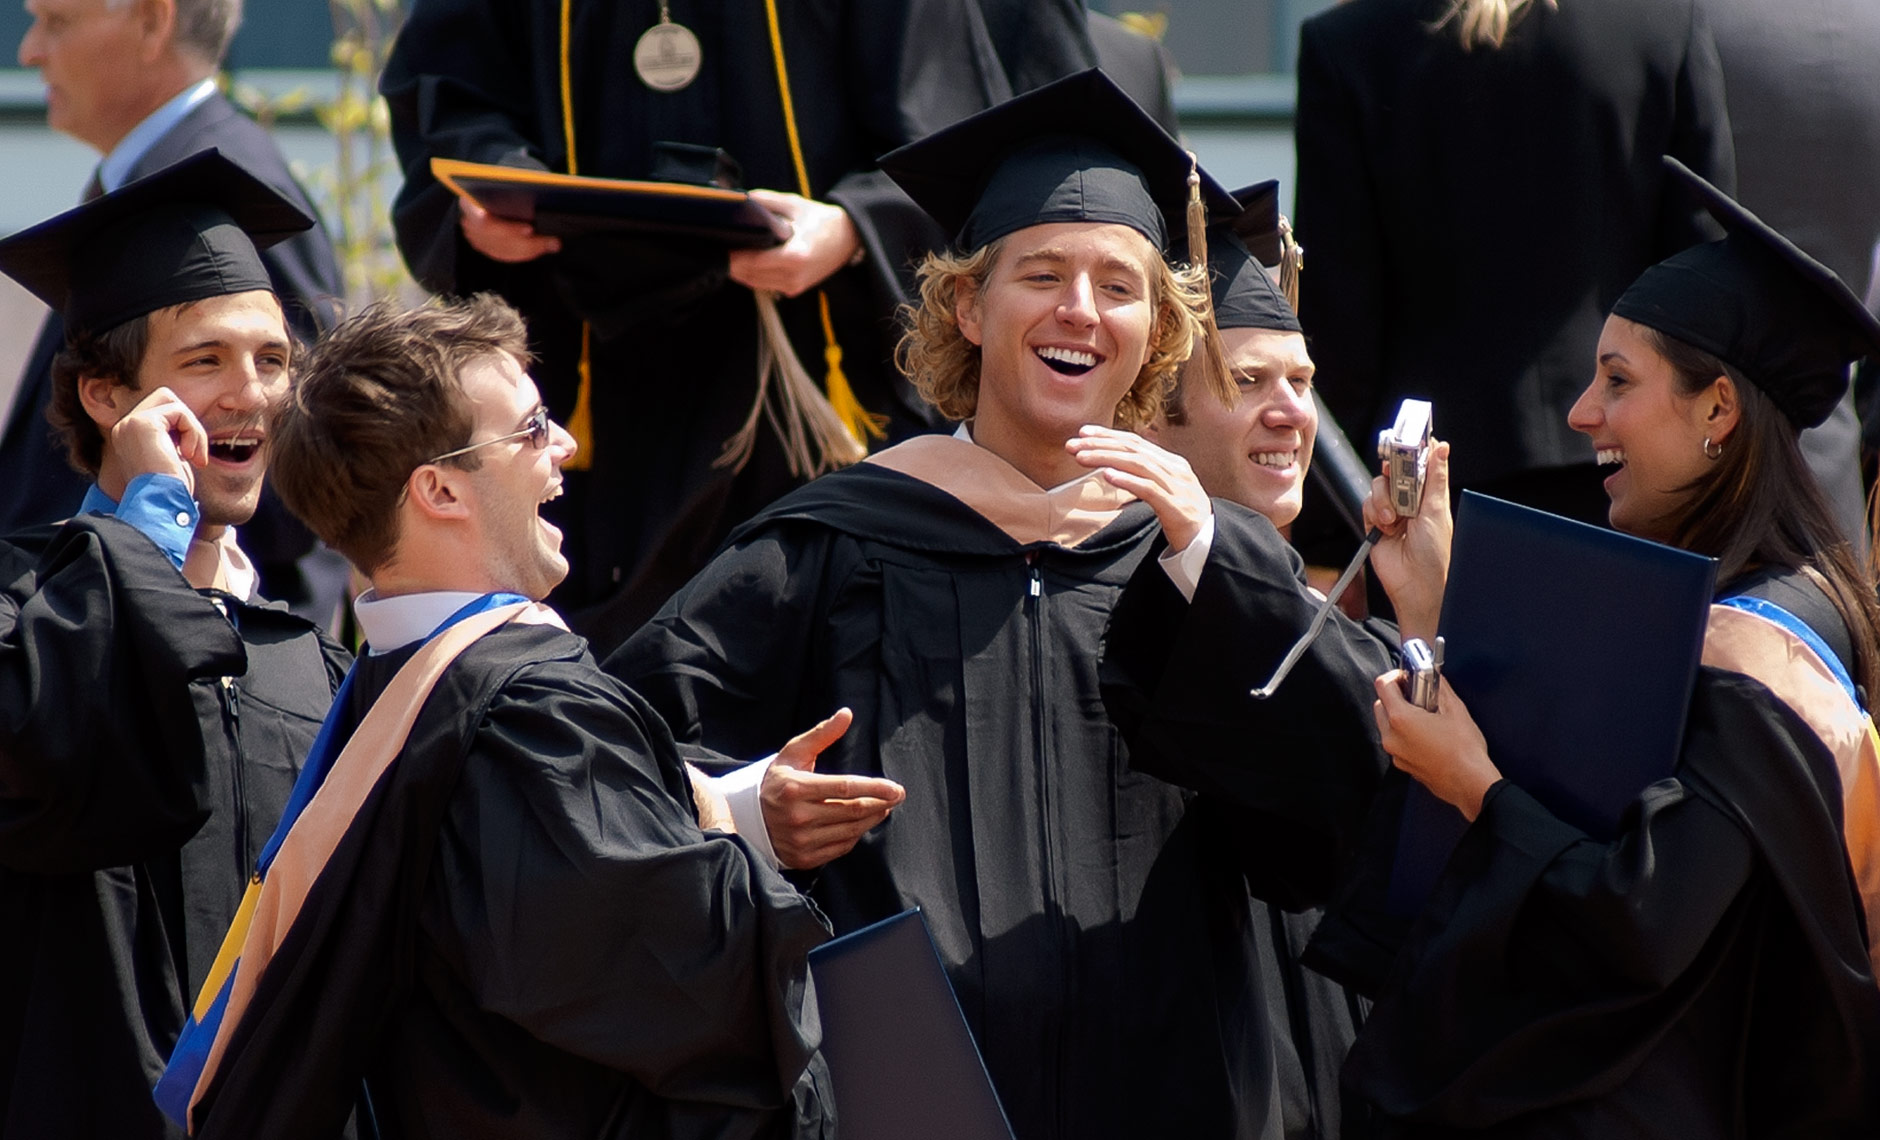 College graduates laughing in caps and gowns